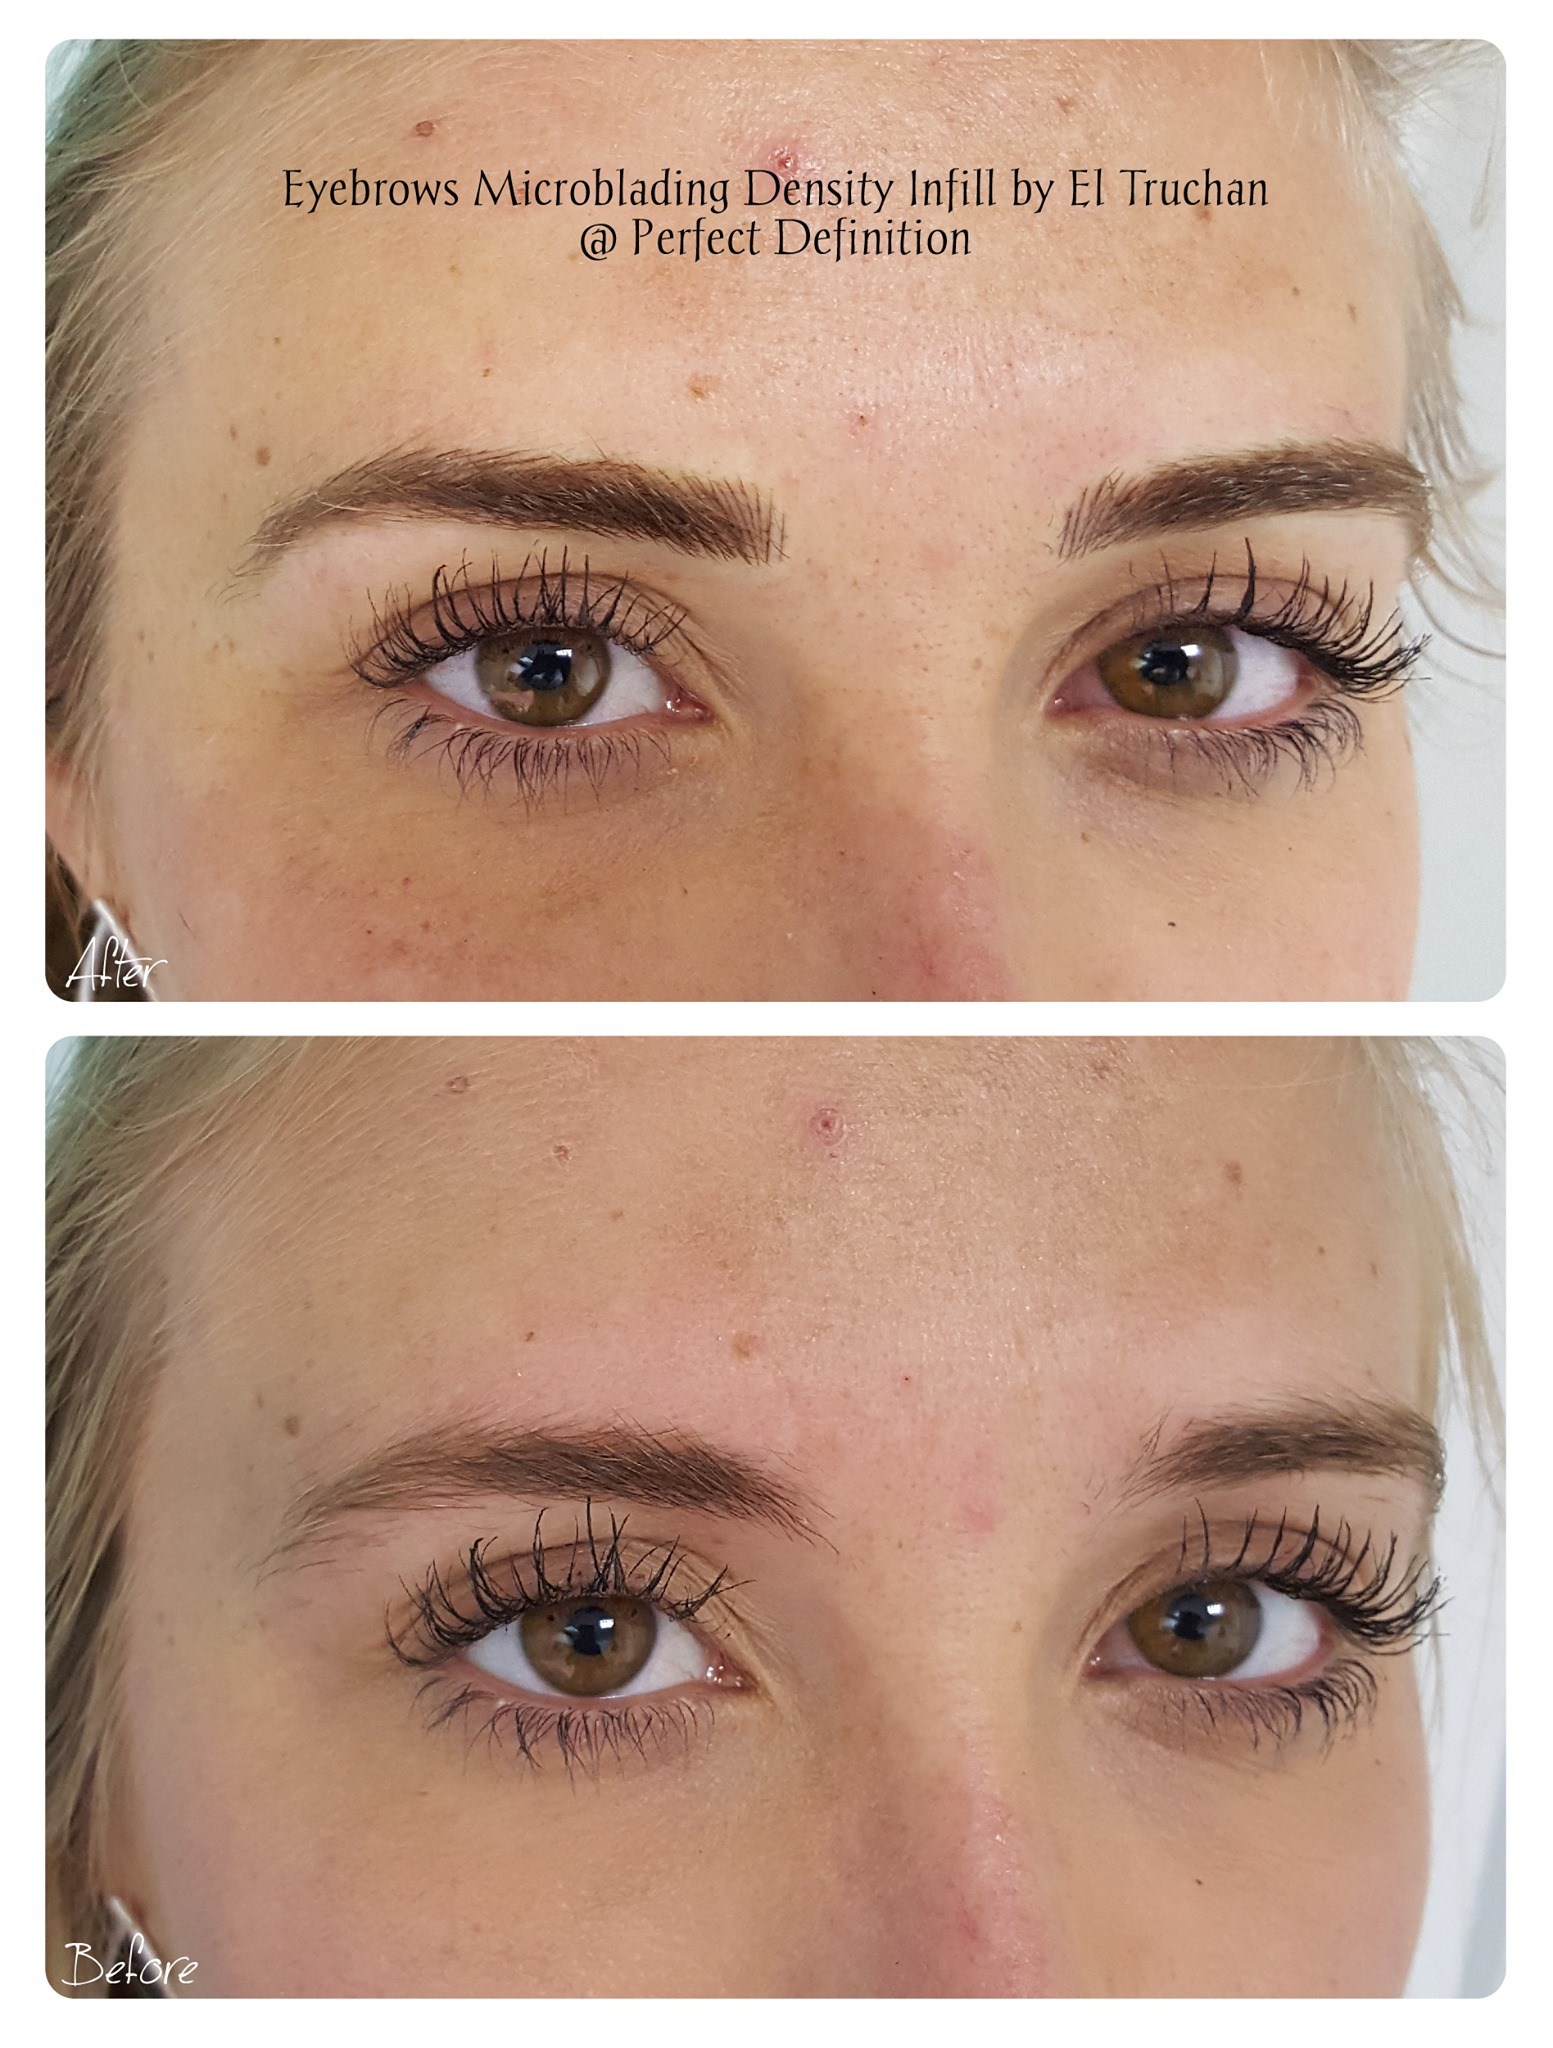 Eyebrows Microblading Density Infill by